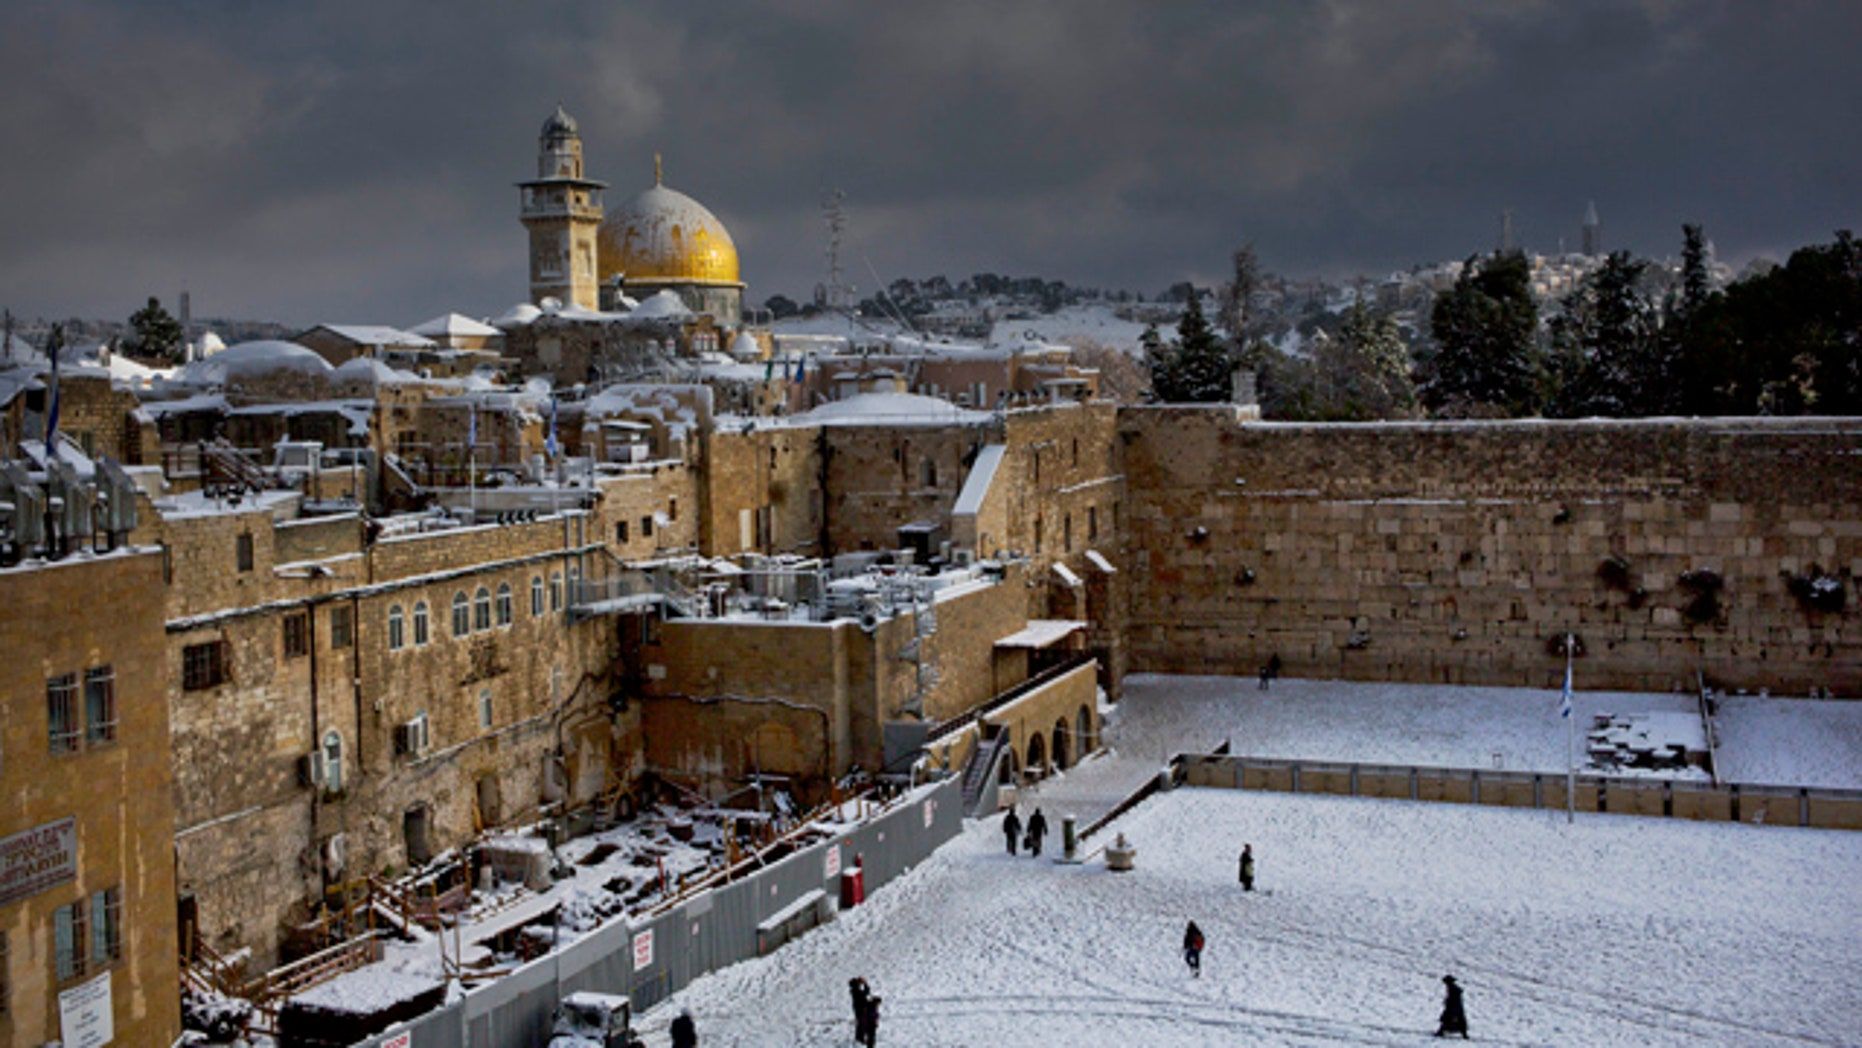 FILE - In this Dec. 13, 2013 file photo, the Western Wall, right, and the gilded Dome of the Rock, among the holiest sites for Jews and Muslims, are covered in snow. (AP Photo/Dusan Vranic, File)